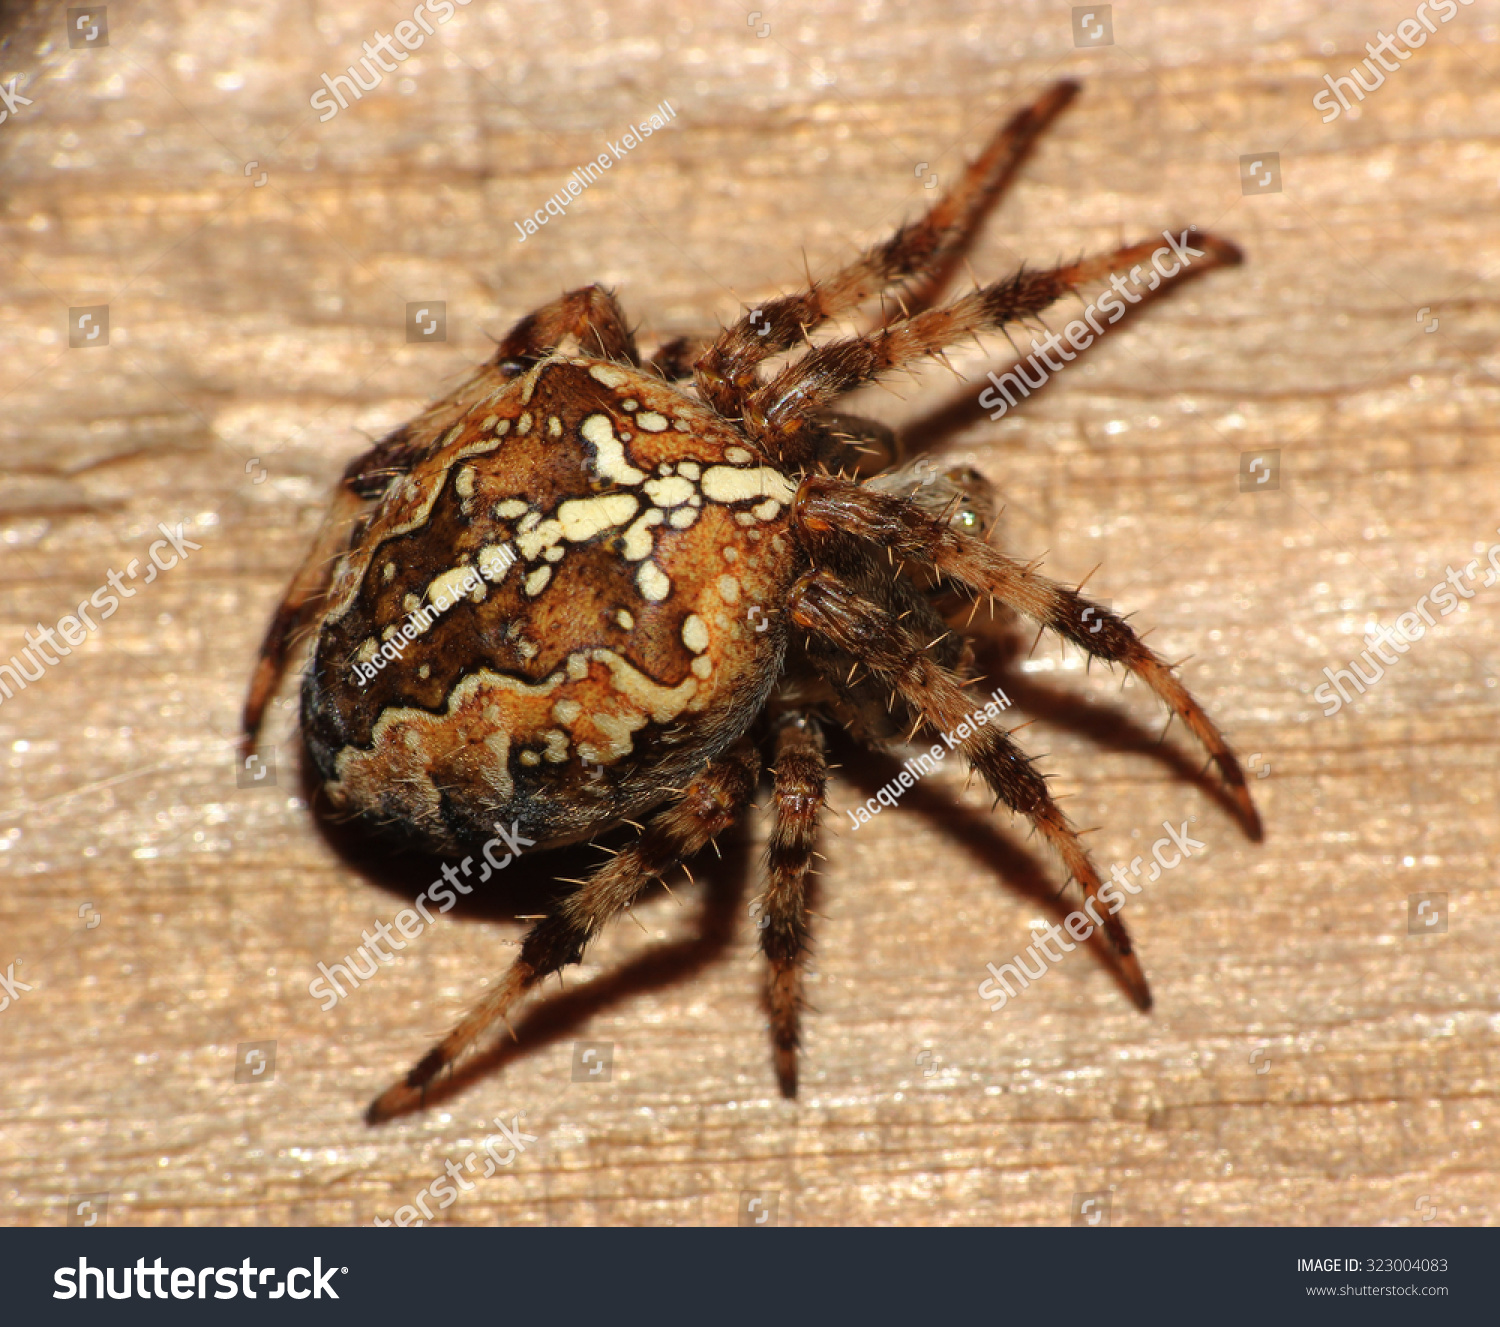 Common Garden Spider On Wooden Background Stock Photo (Royalty Free ...